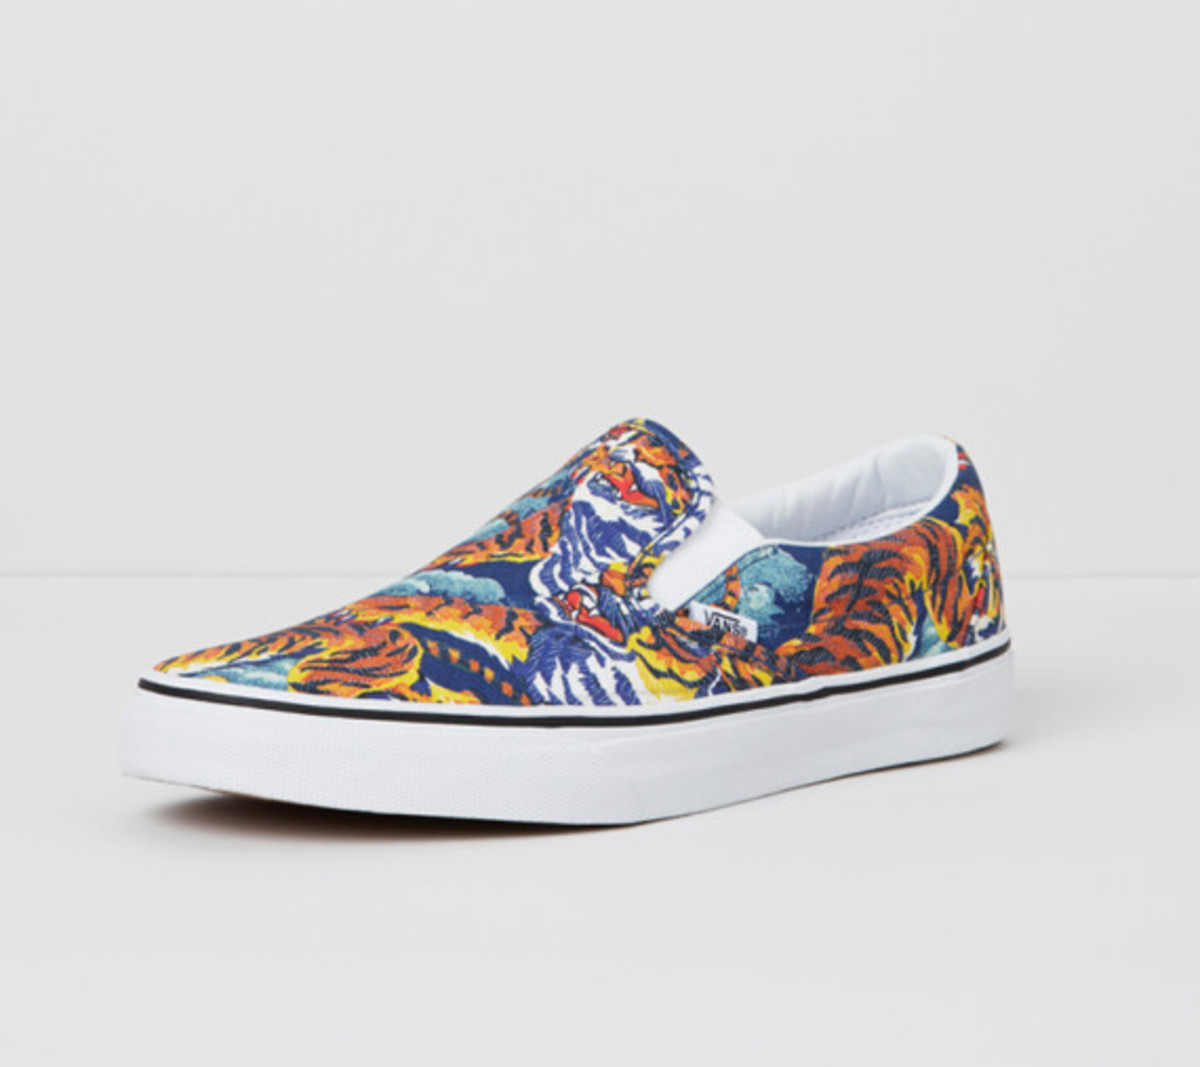 kenzo-vans-fall-2013-collection-10